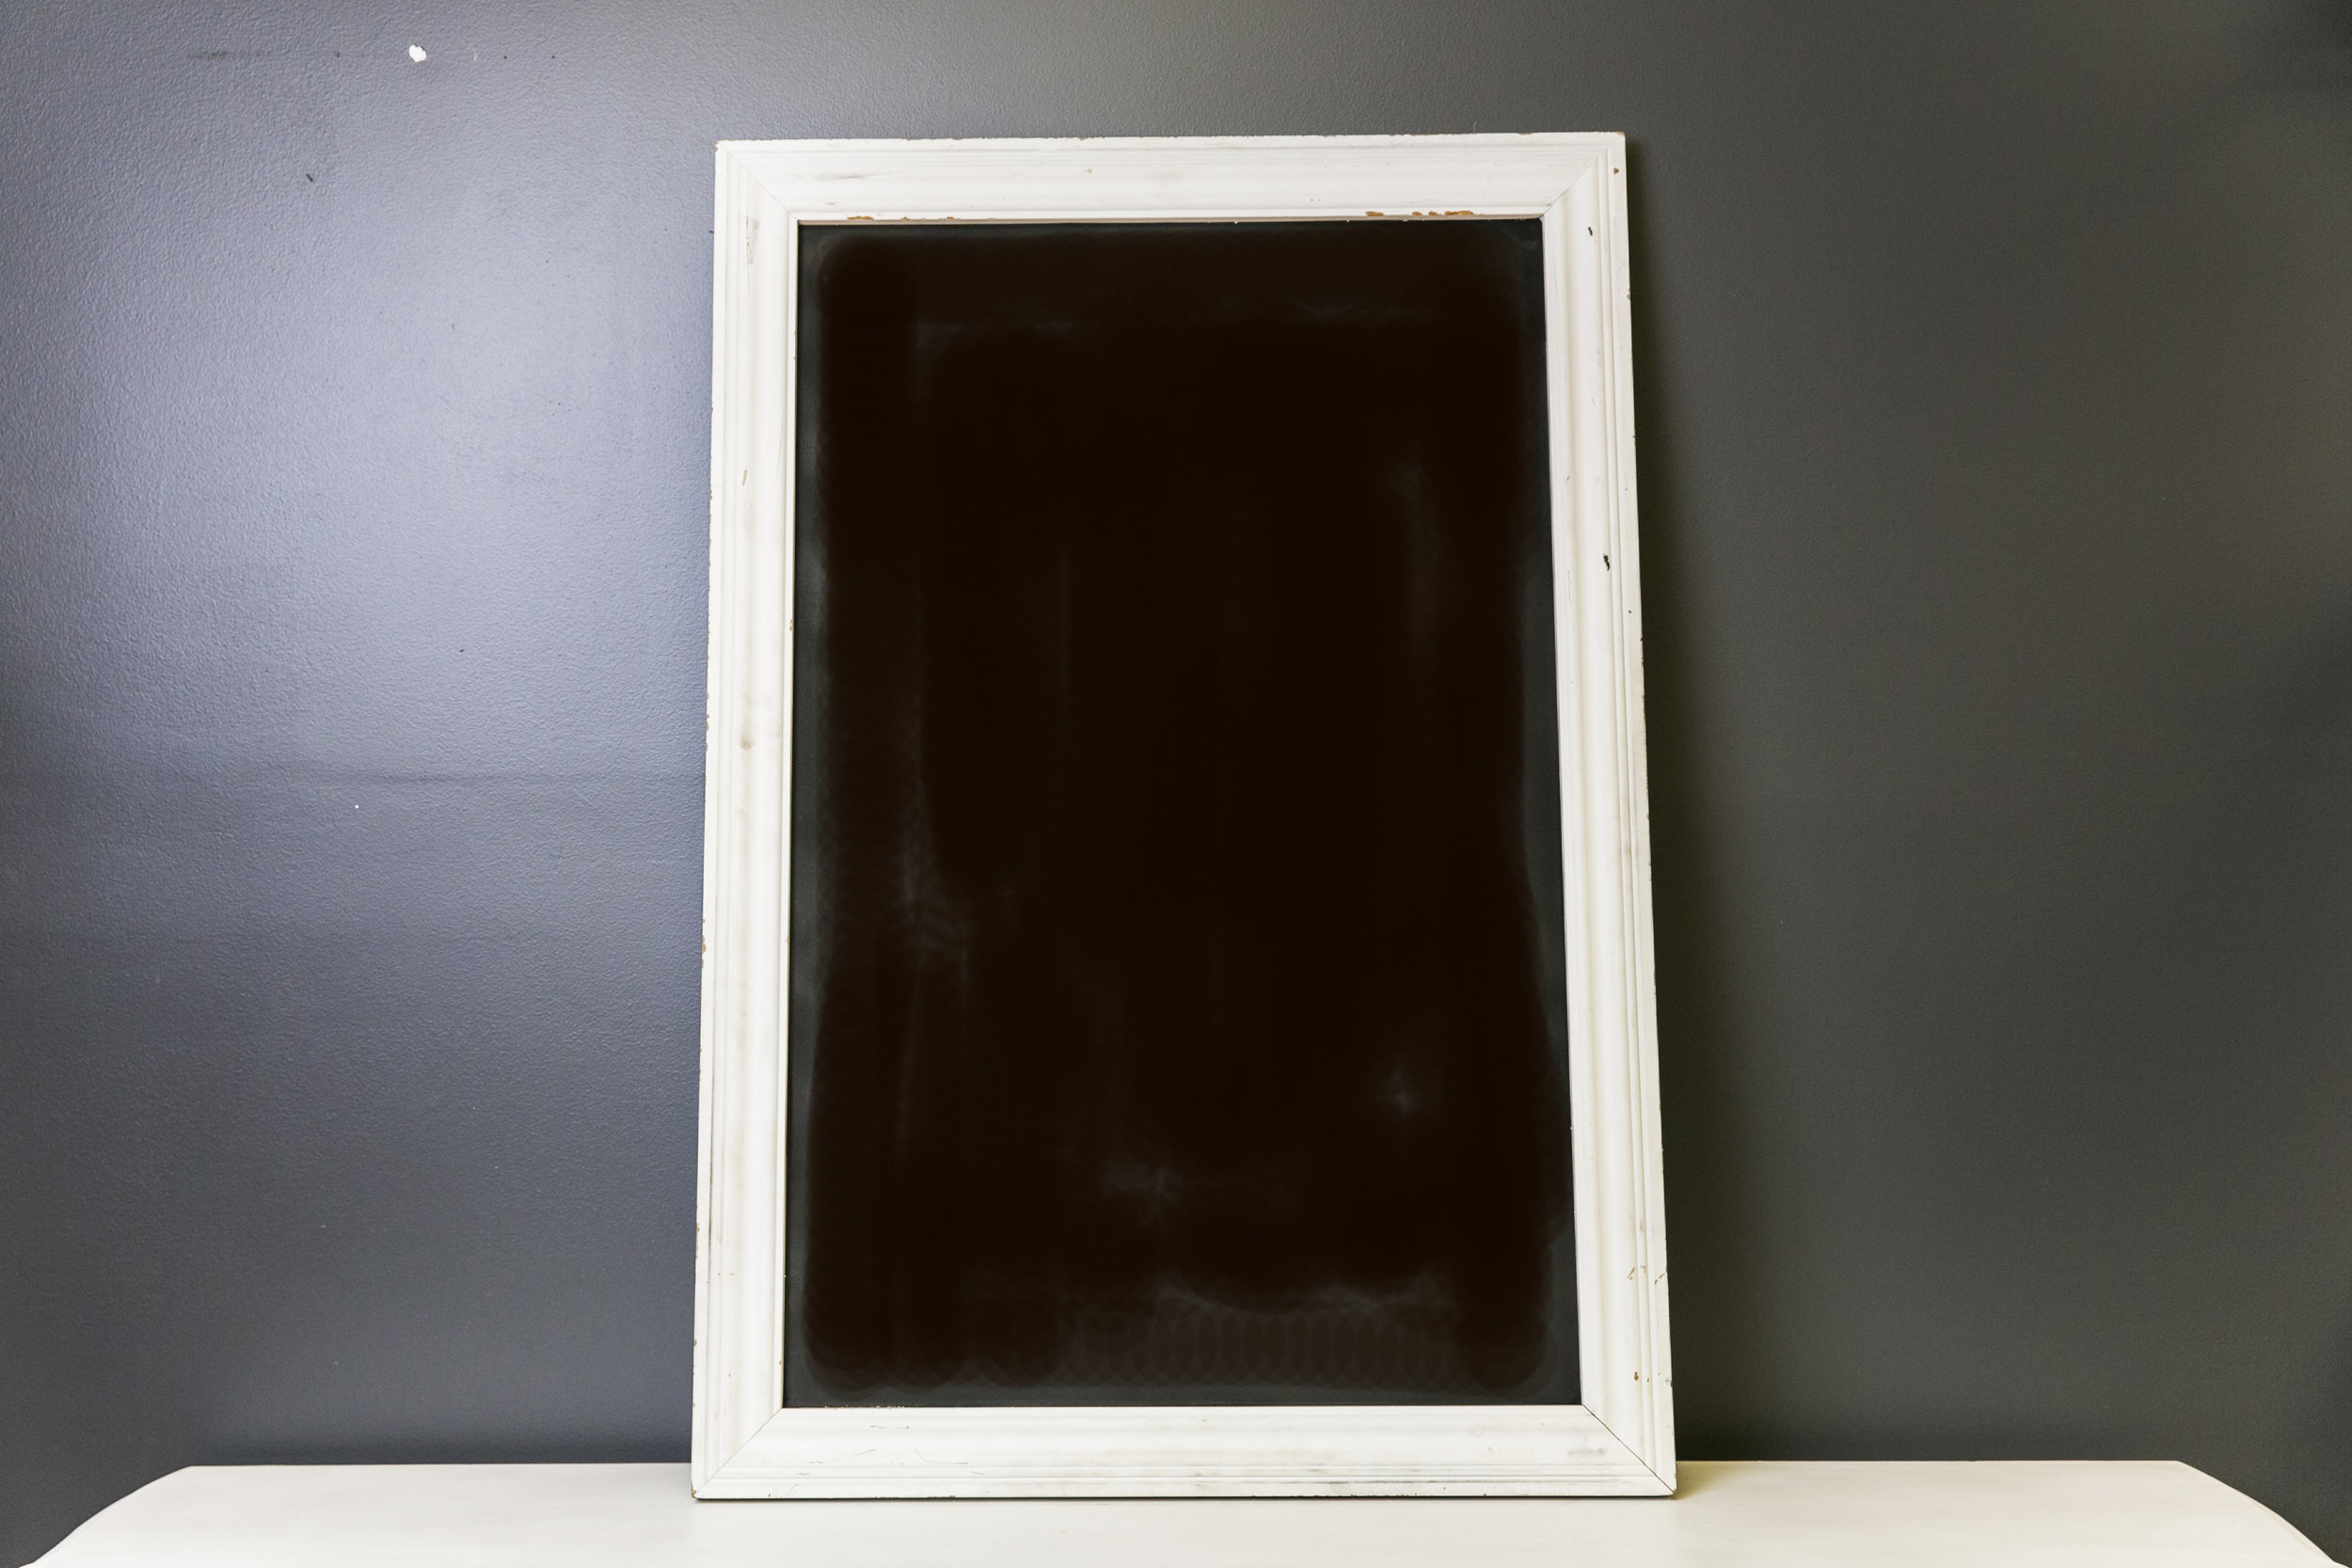 Spencer Chalkboard 38 x 26